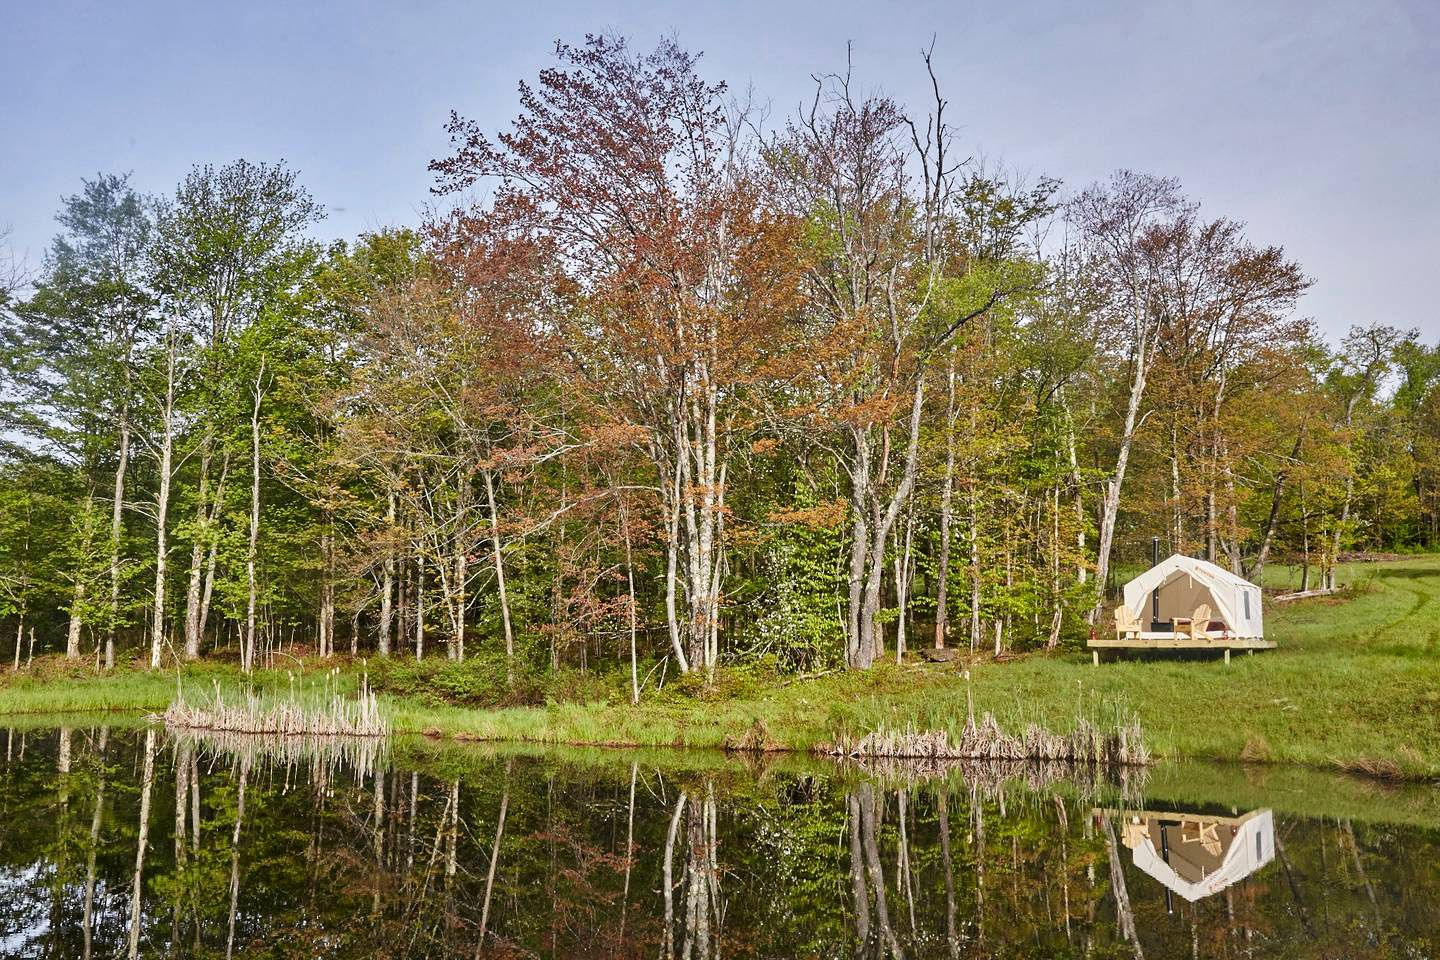 Tented Cabins (Delhi, New York, United States)